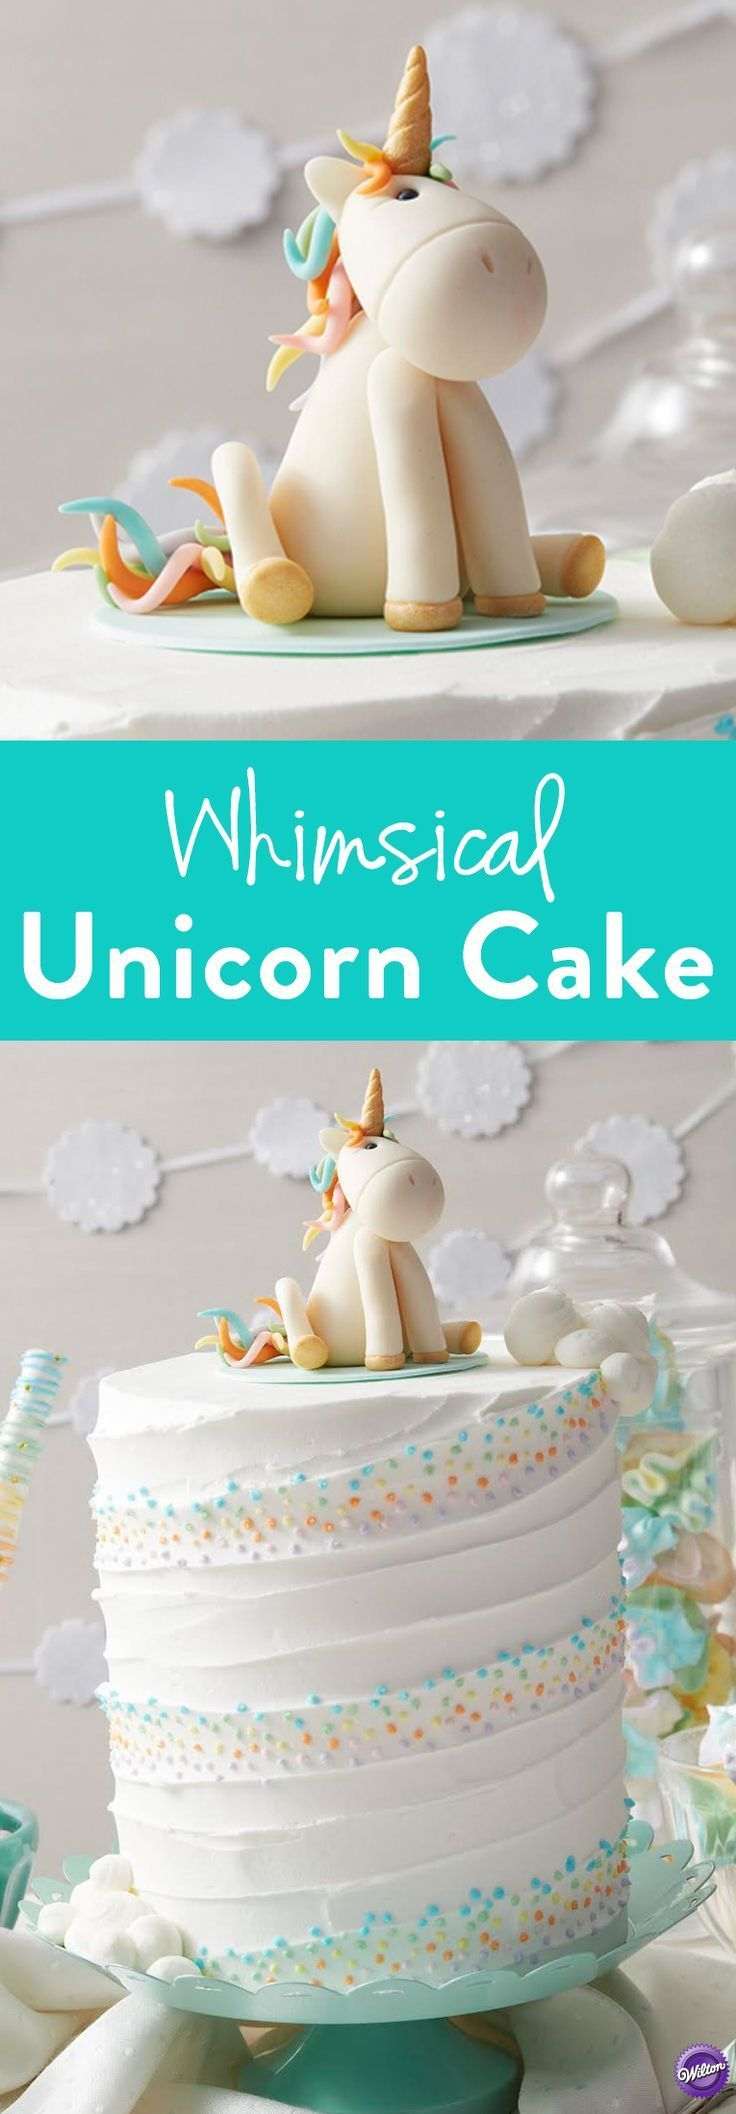 How to Make a Whimsical Unicorn Cake – Learn how to make this adorable Whimsical Unicorn Cake that's great for birthdays and baby showers or any unicorn-themed party!